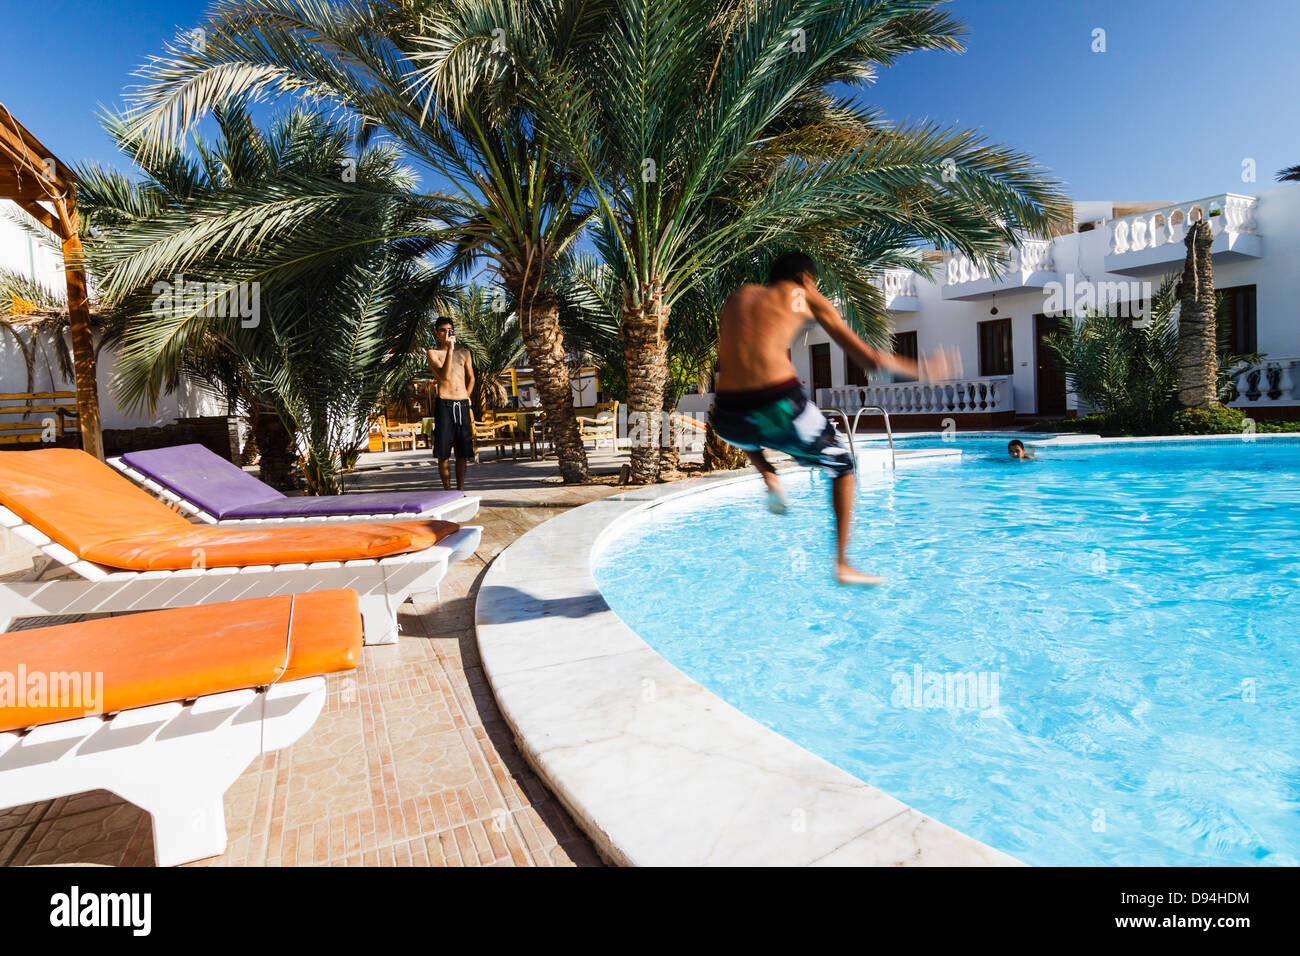 Jumping on the swimming pool of a tourist resort in Dahab, Egypt - Stock Image